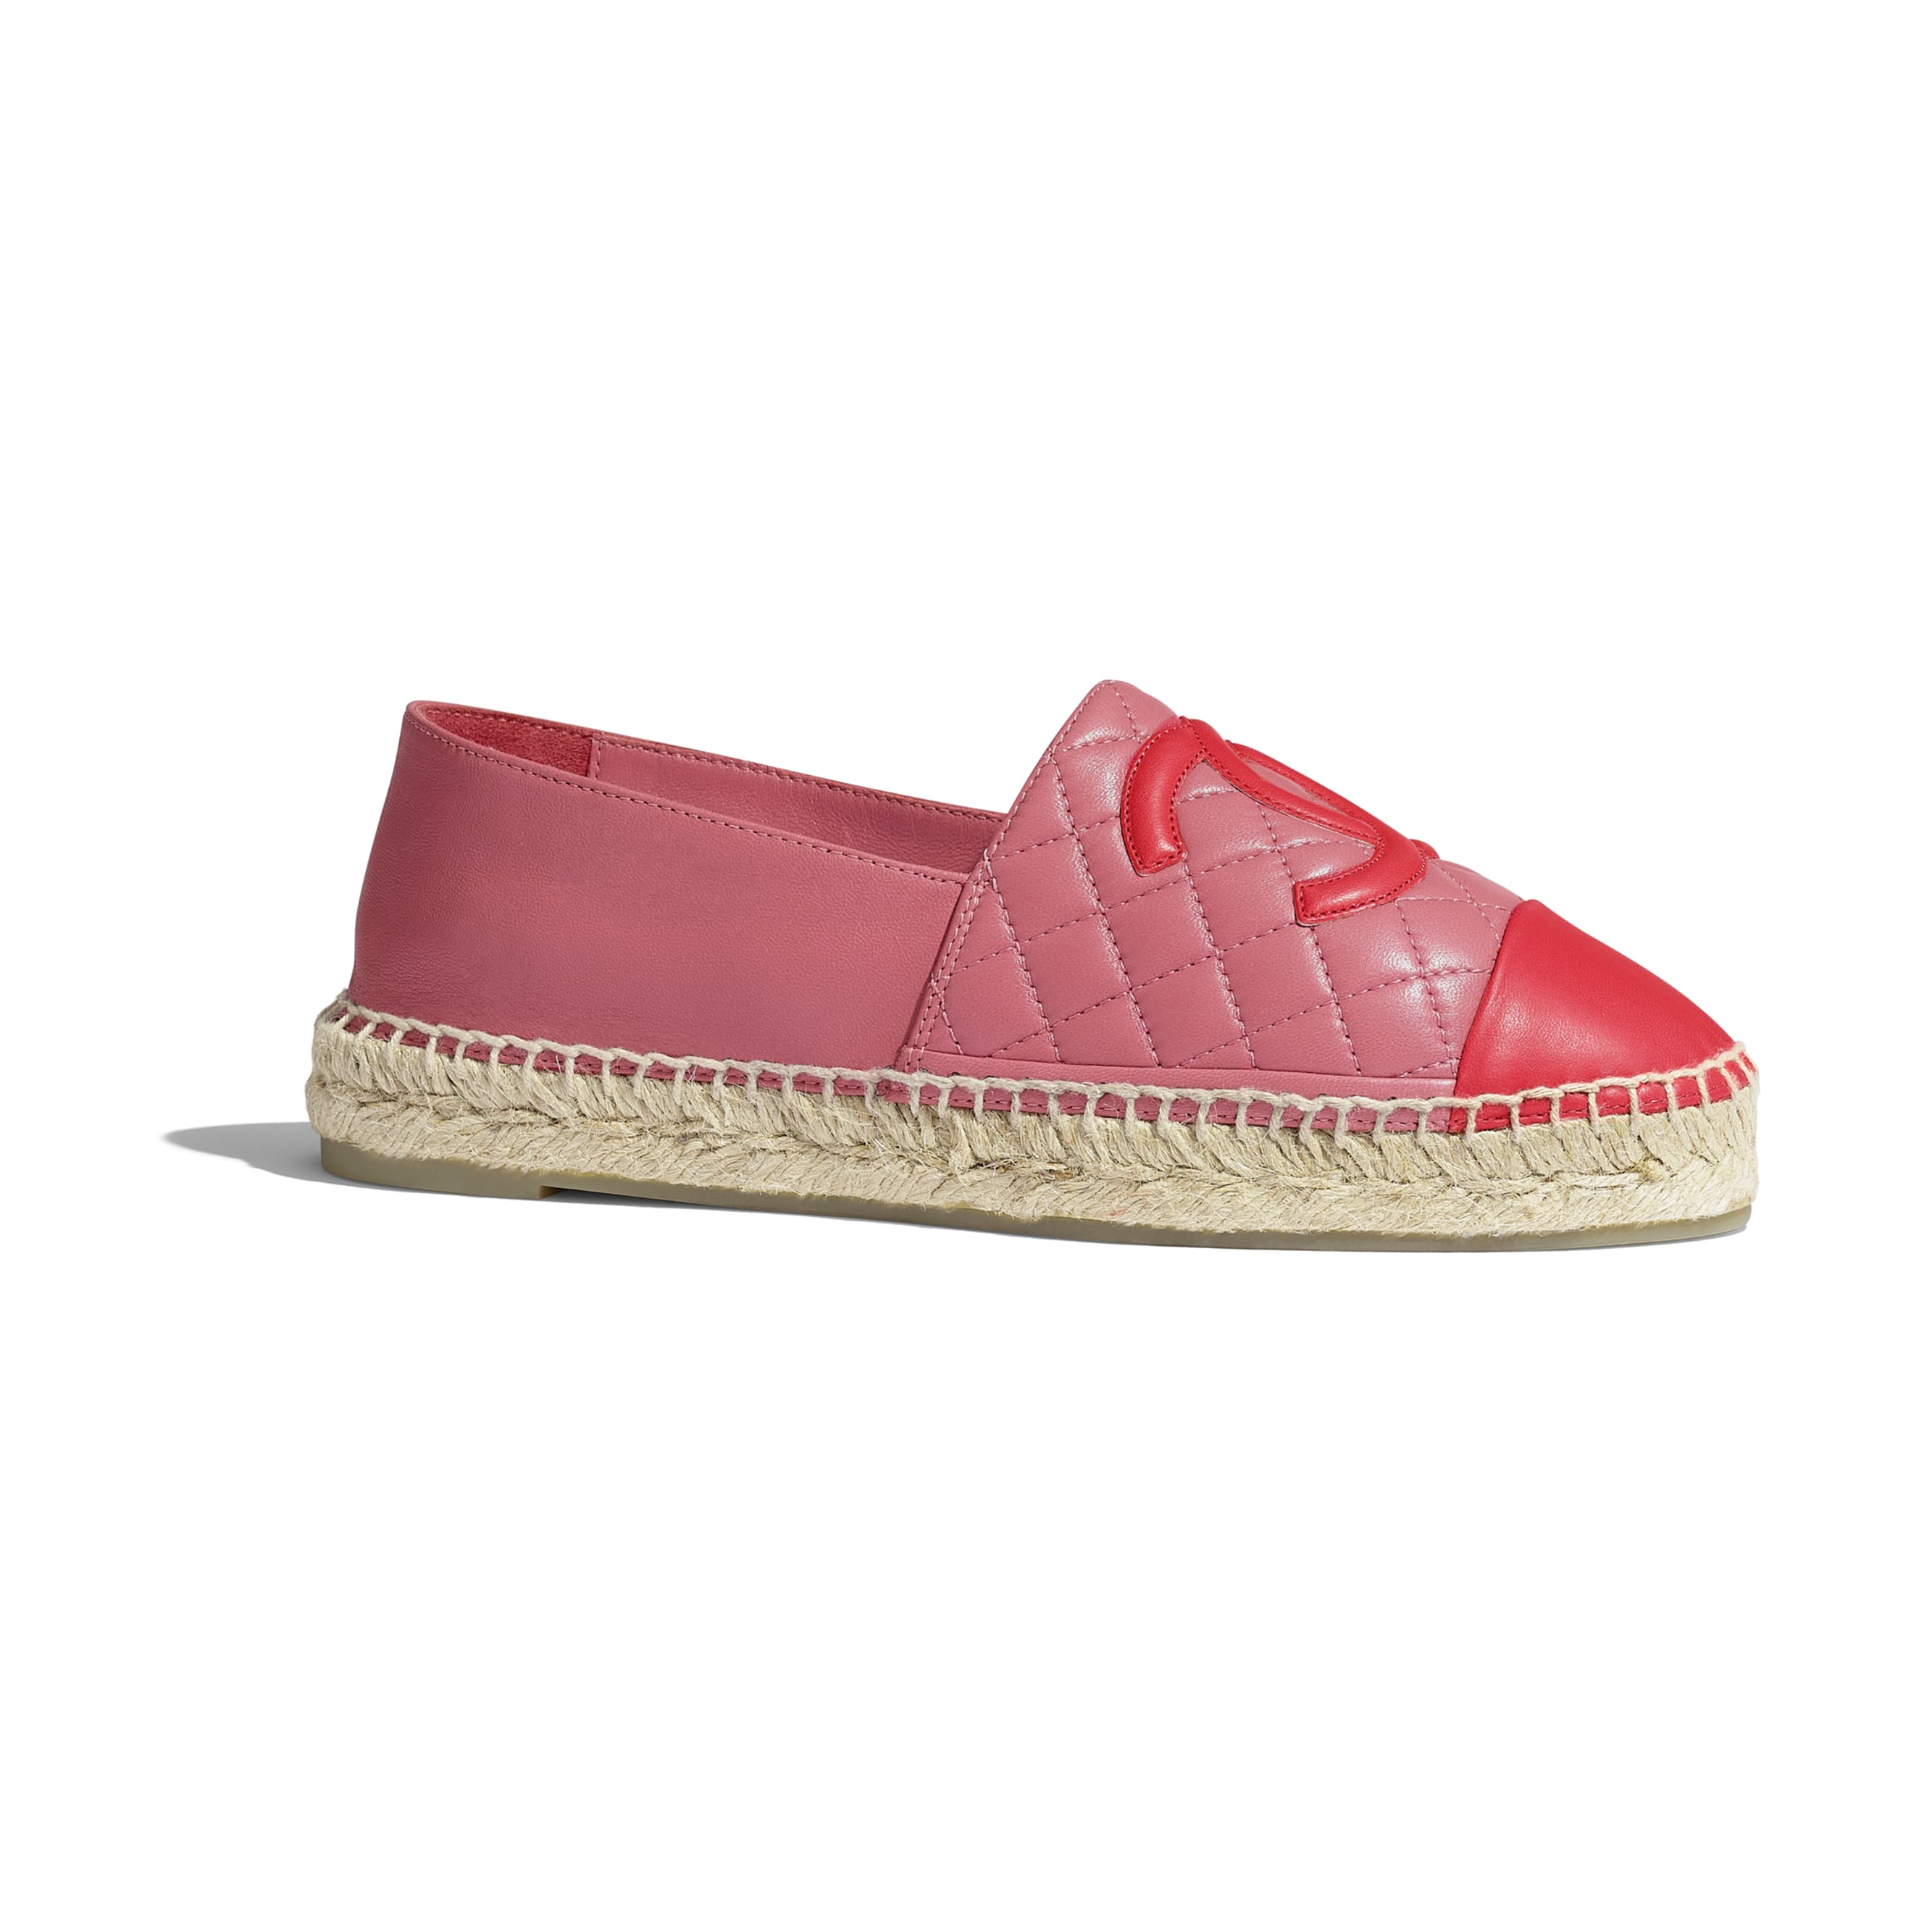 Espadrilles - Pink & red - Lambskin - CHANEL - Default view - see standard sized version